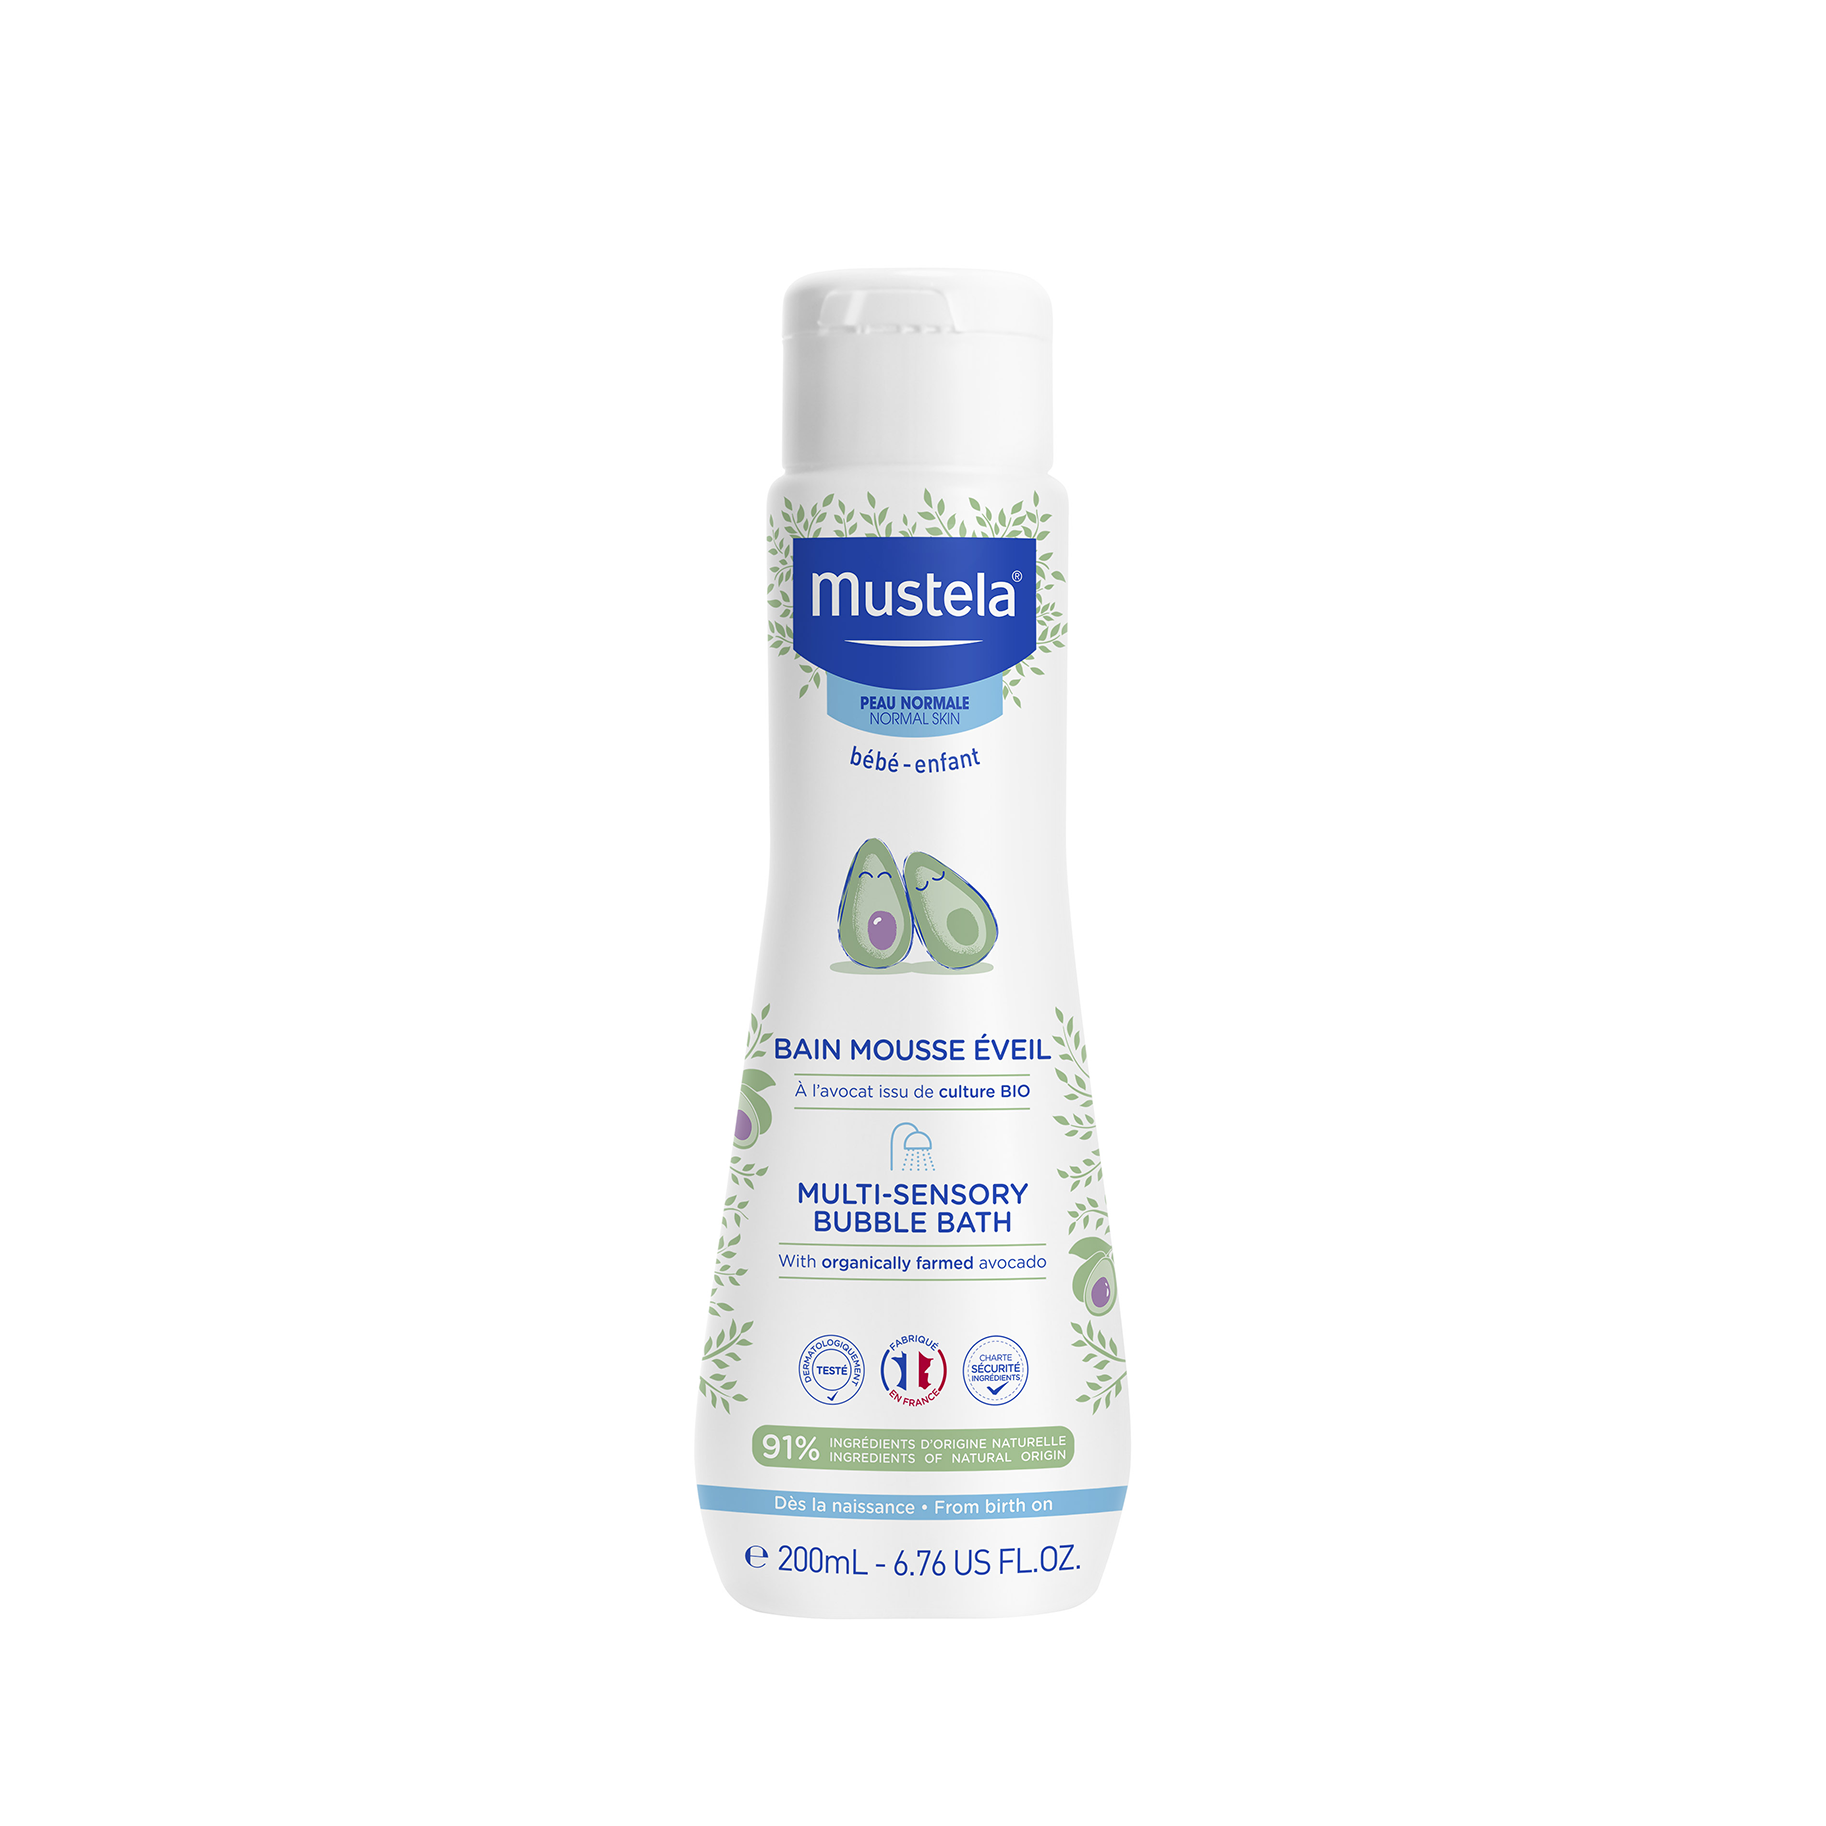 MUSTELA MULTISENSORY BUBBLEBATH - 200ml